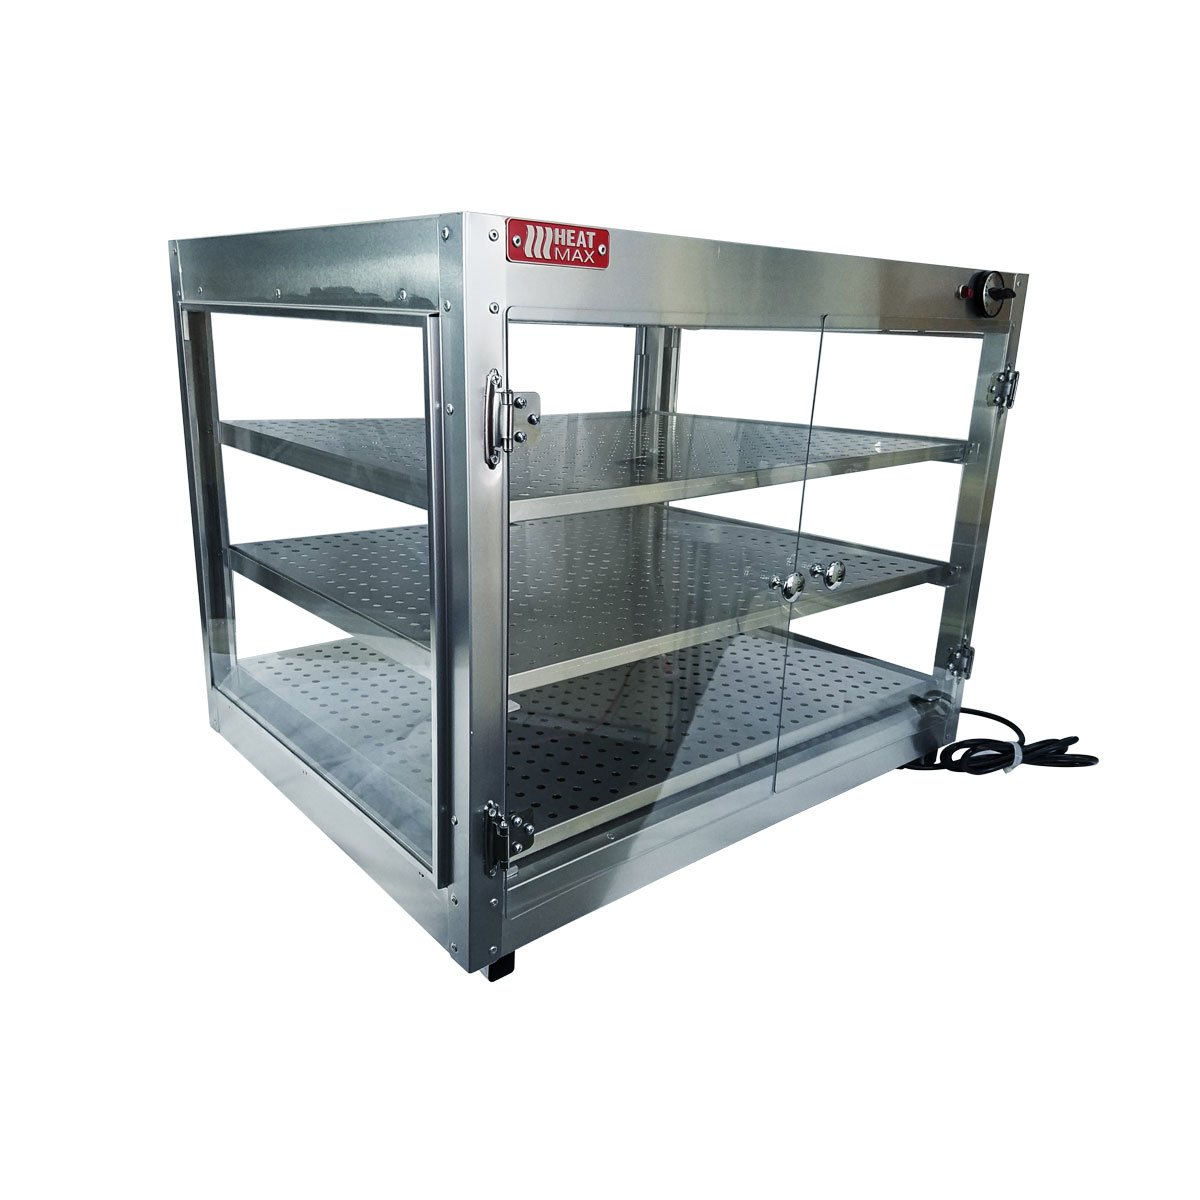 Commercial Food Pizza Pastry Warmer Countertop Cabinet 30''x24''x24'' Wide Display